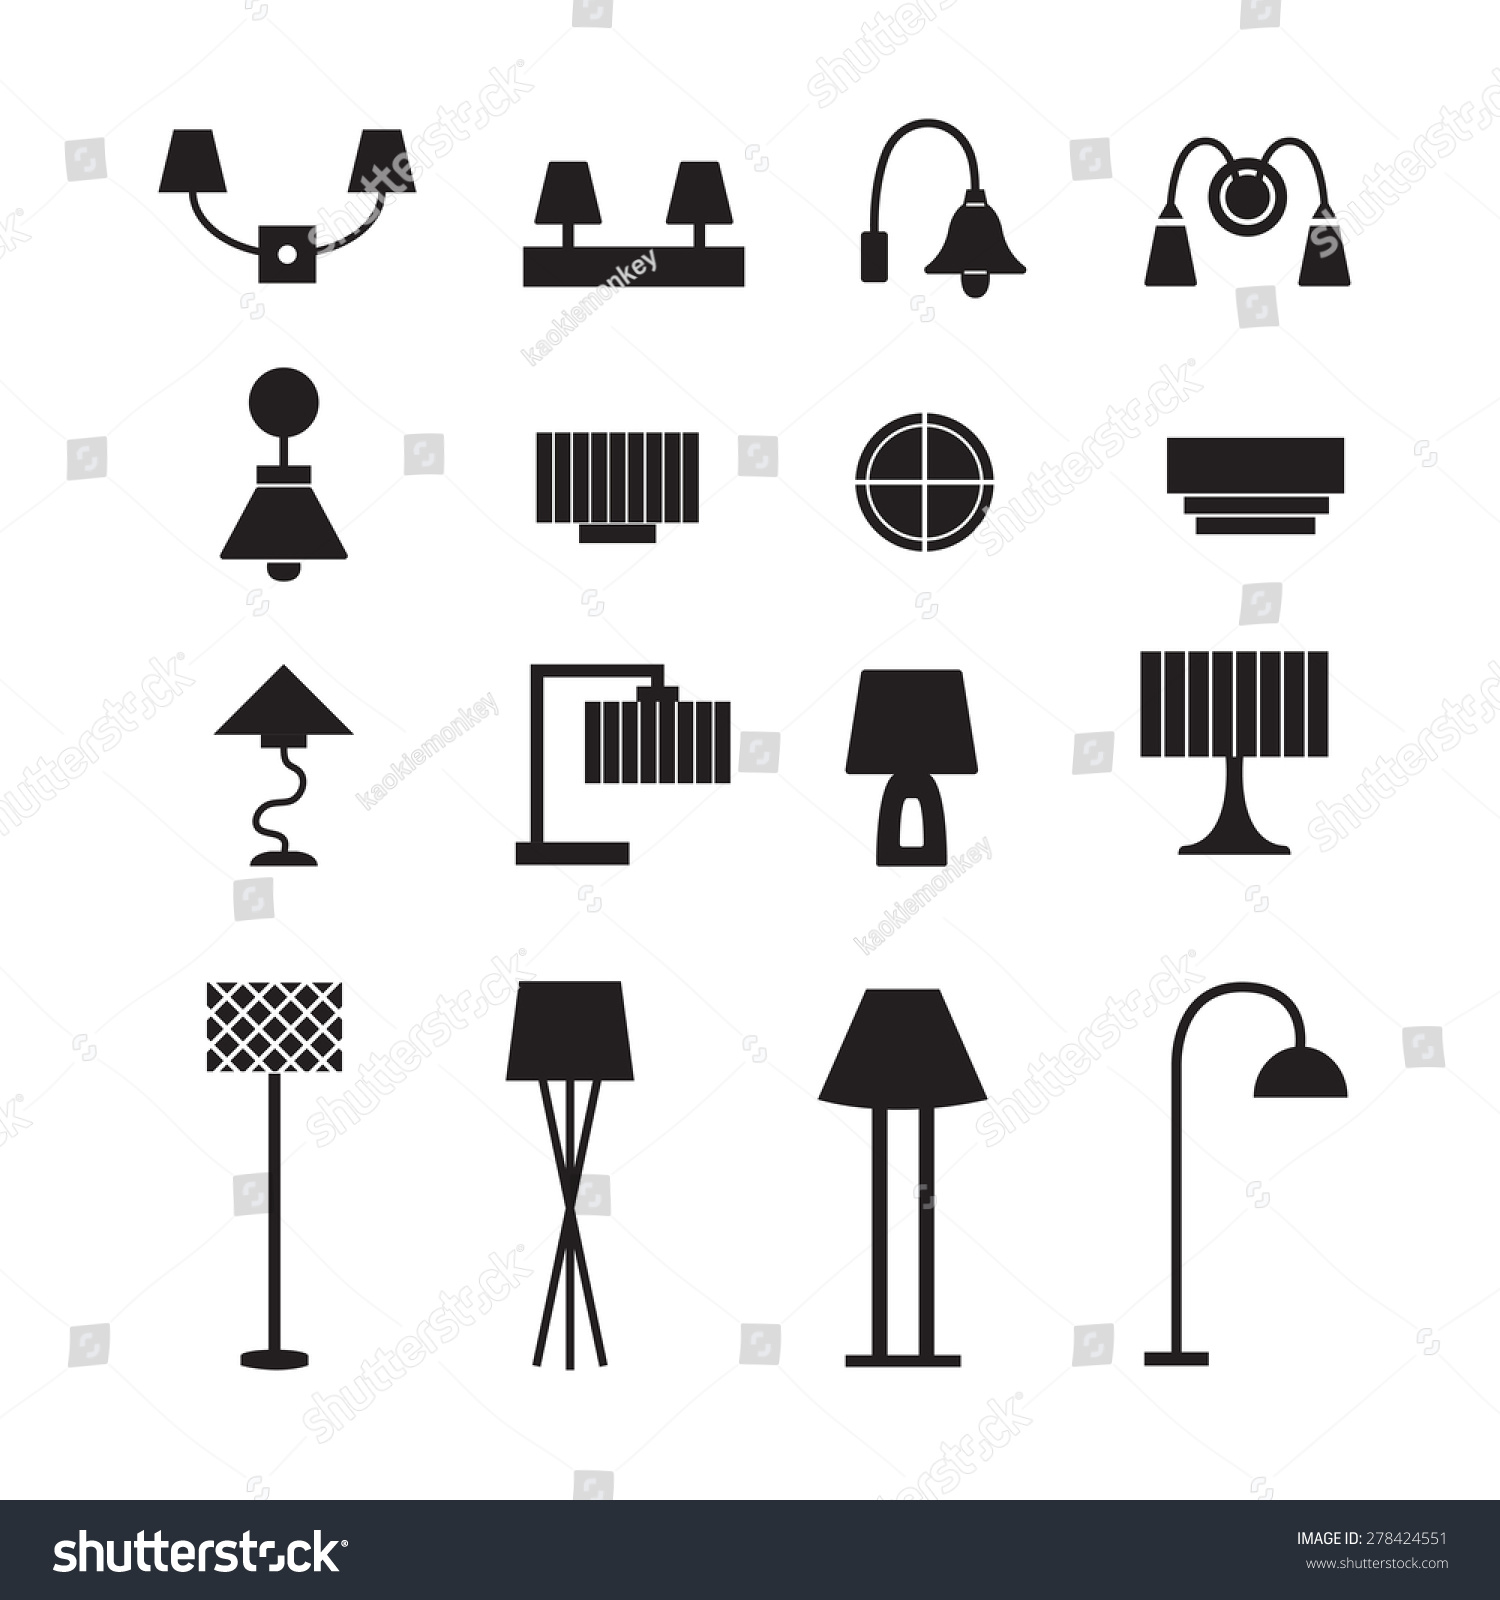 Wall Lamps Vector : Lamp Vector, Wall Lamp, Desk Lamp, Floor Lamp, Decorate Lamp Icon Set - 278424551 : Shutterstock